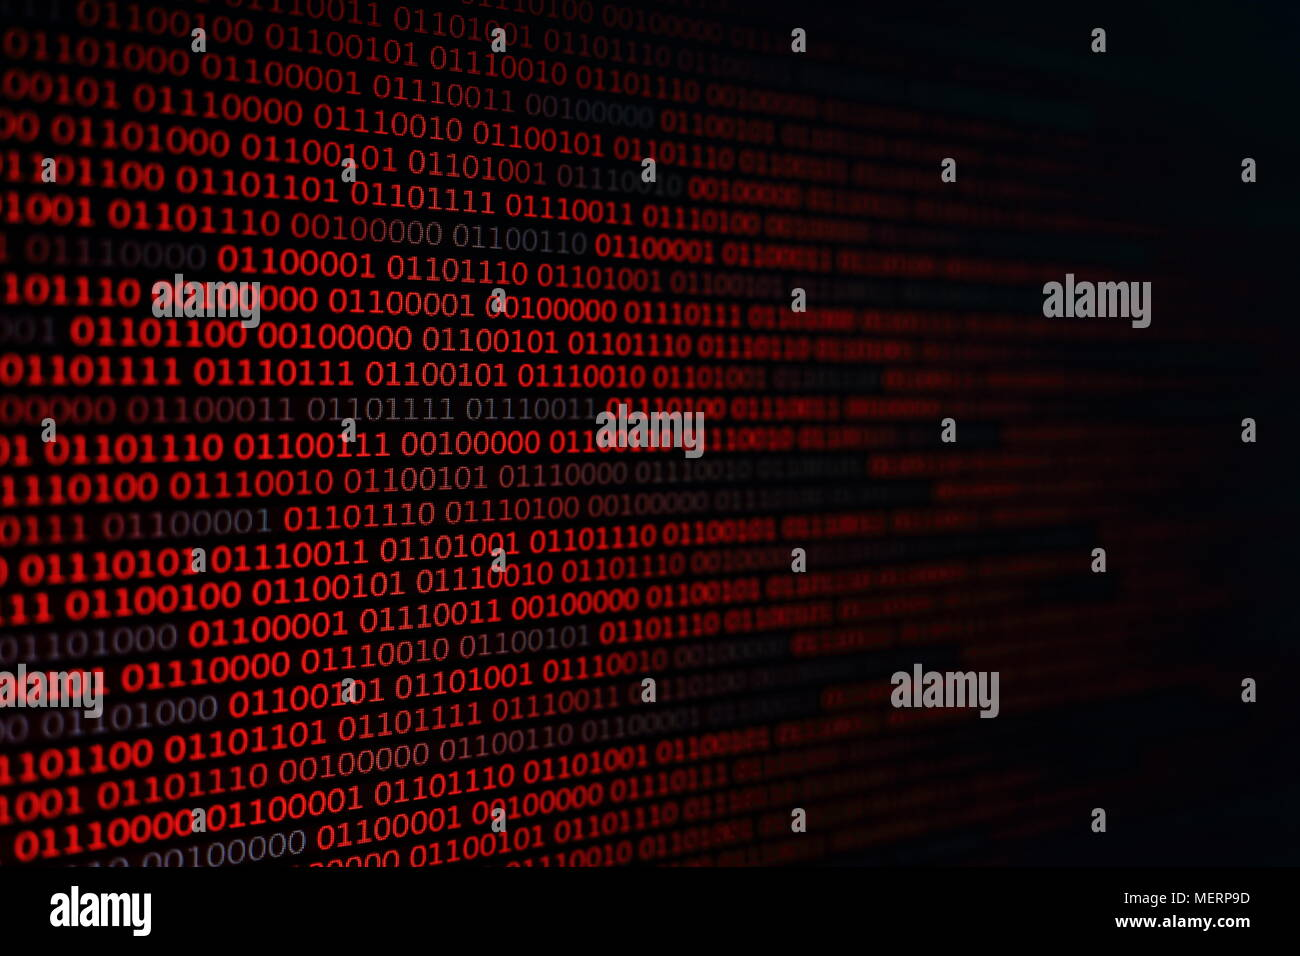 red binary code background. computer problems concept. black background. malware virus data transfer. - Stock Image